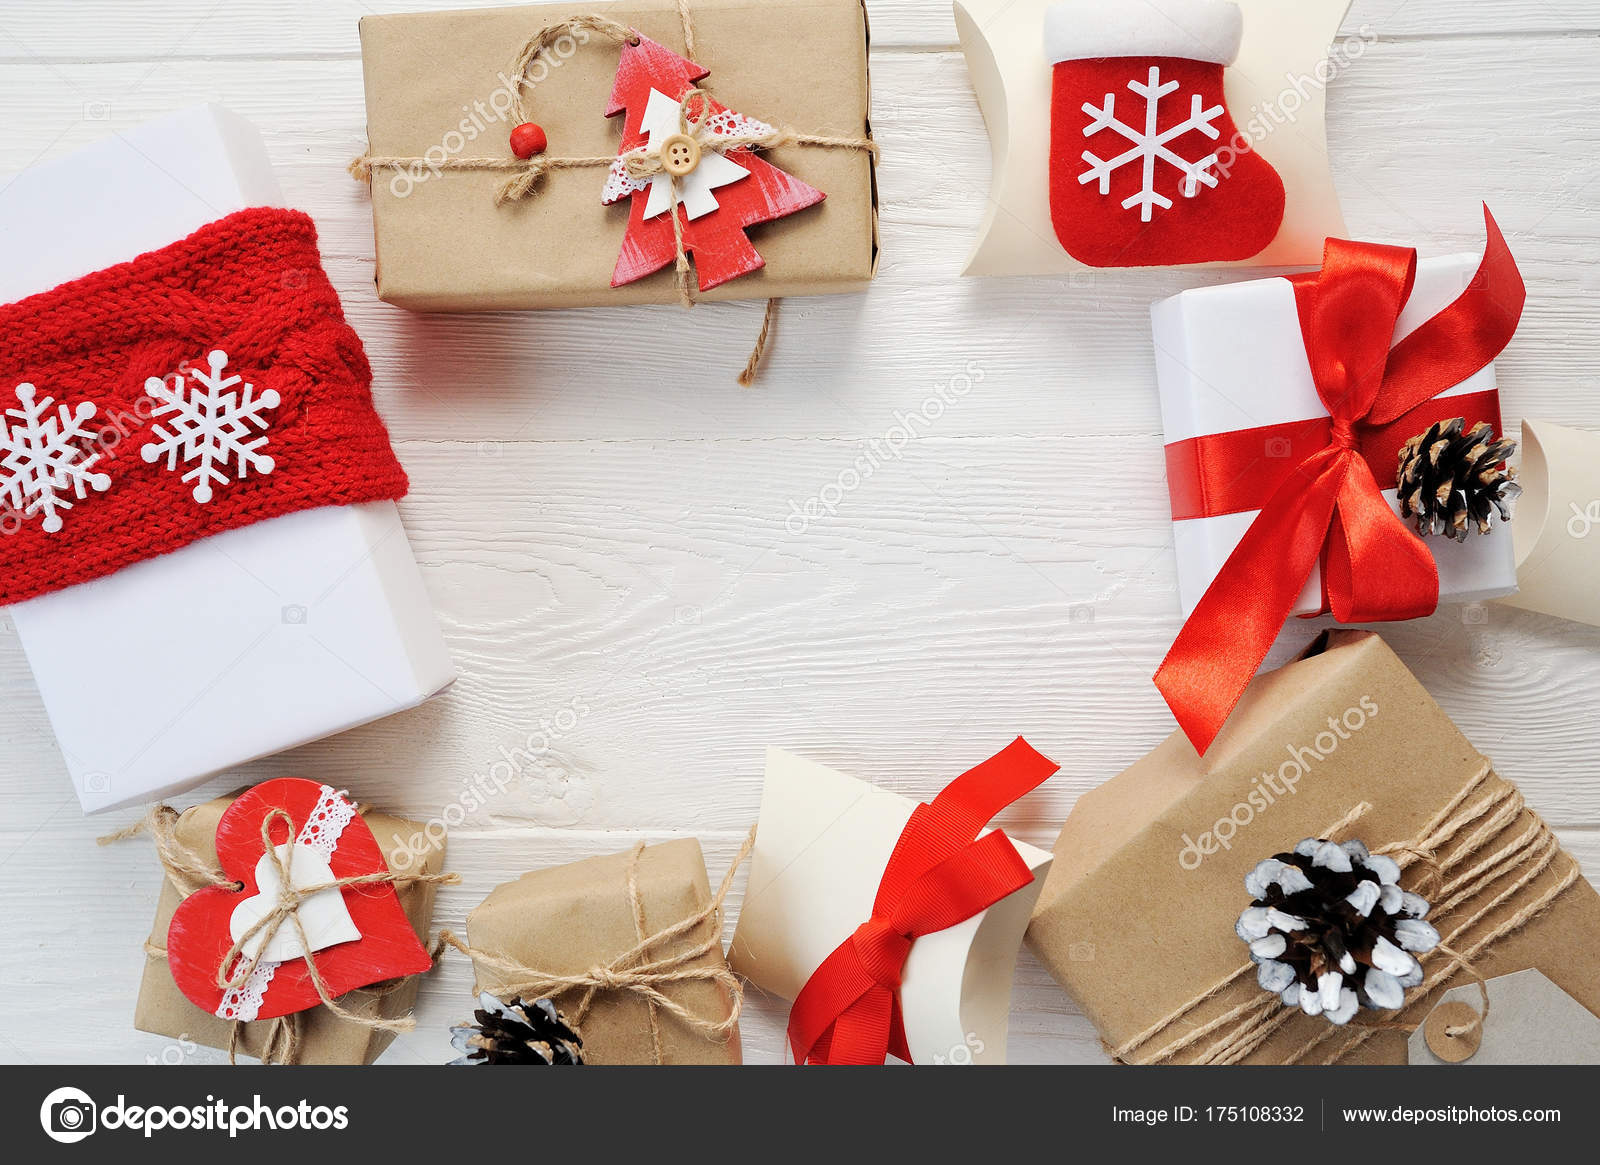 mockup christmas background christmas present red gifts box and decorating elements on white wooden background